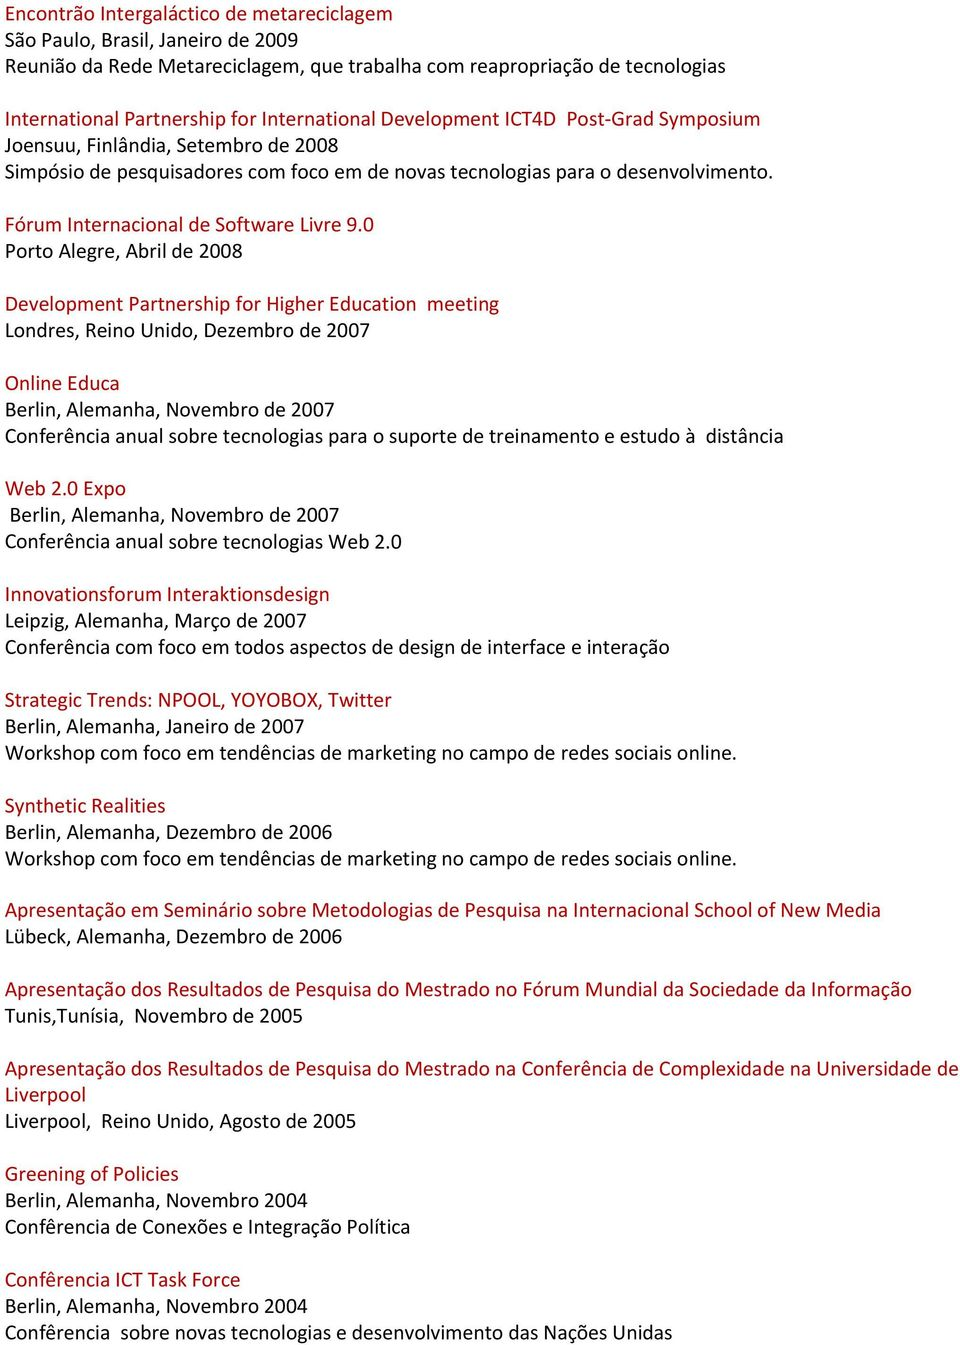 0 Porto Alegre, Abril de 2008 Development Partnership for Higher Education meeting Londres, Reino Unido, Dezembro de 2007 Online Educa Berlin, Alemanha, Novembro de 2007 Conferência anual sobre